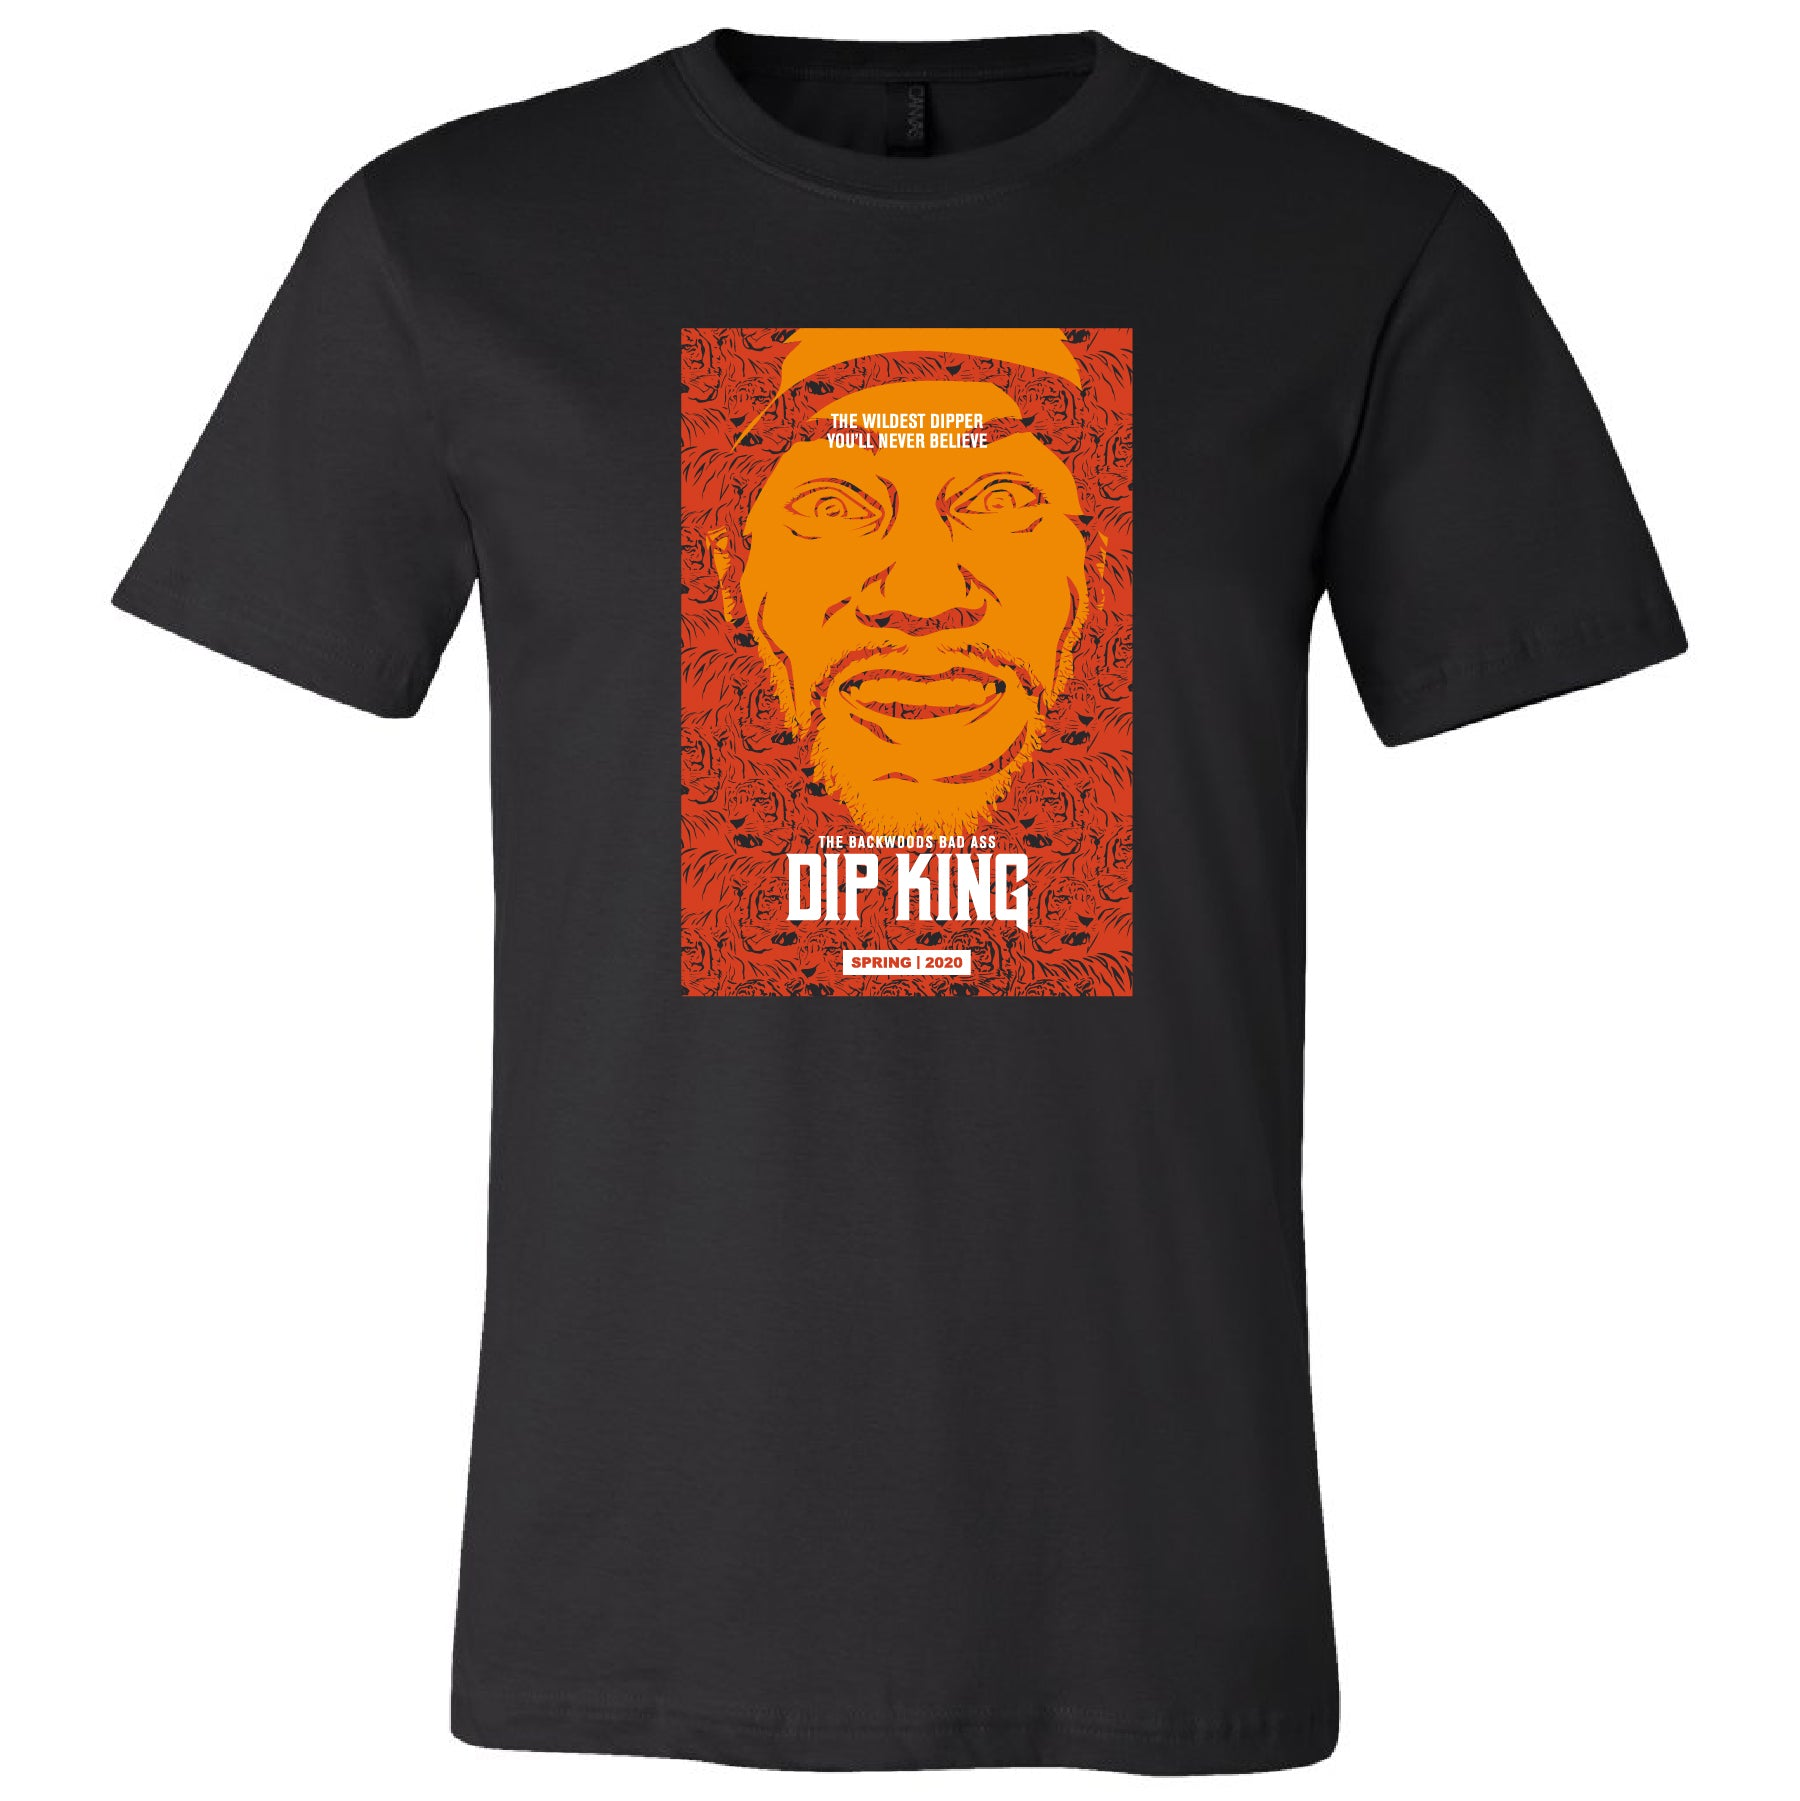 Dip King T-Shirt